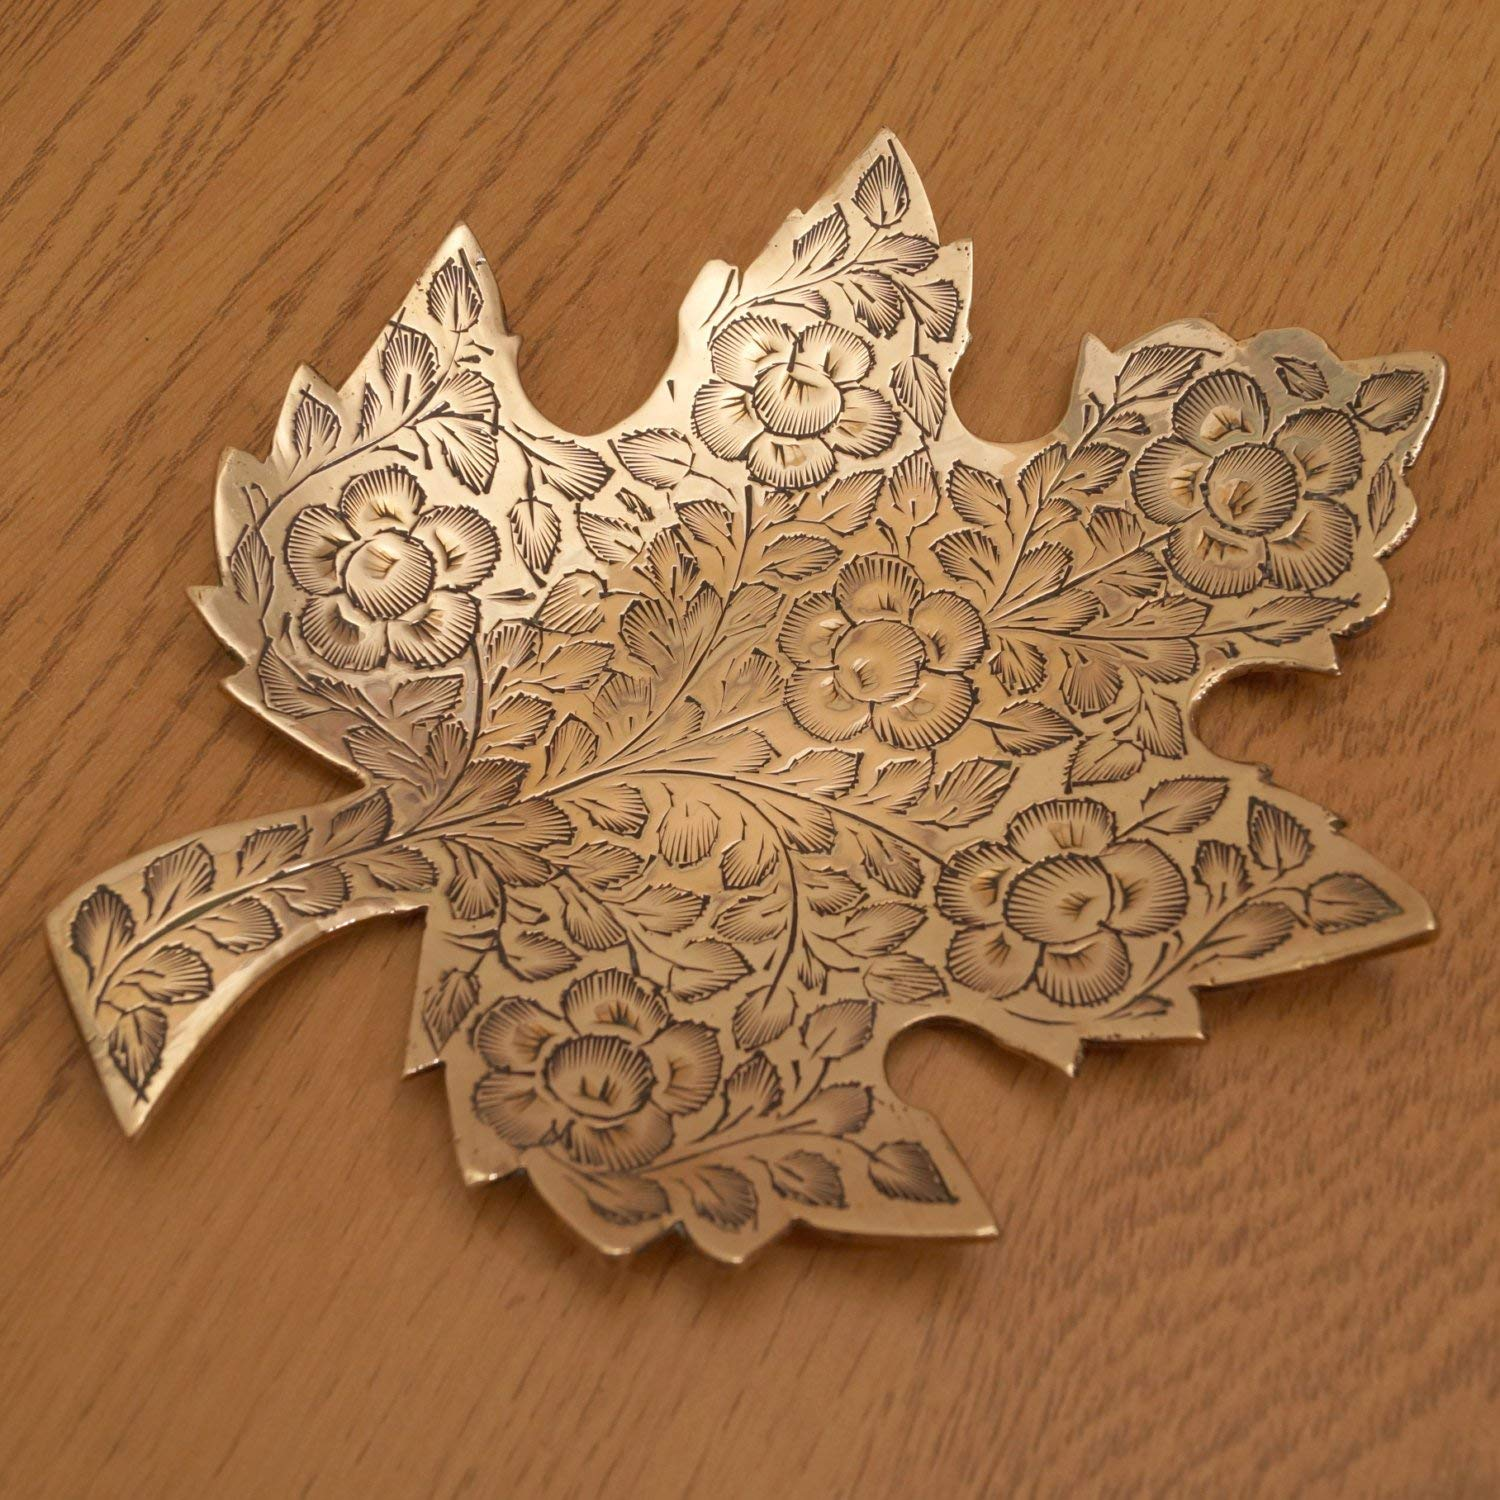 Solid brass vintage leaf design plate || ring / jewlery tray / candy dish / sweet tray || made in India